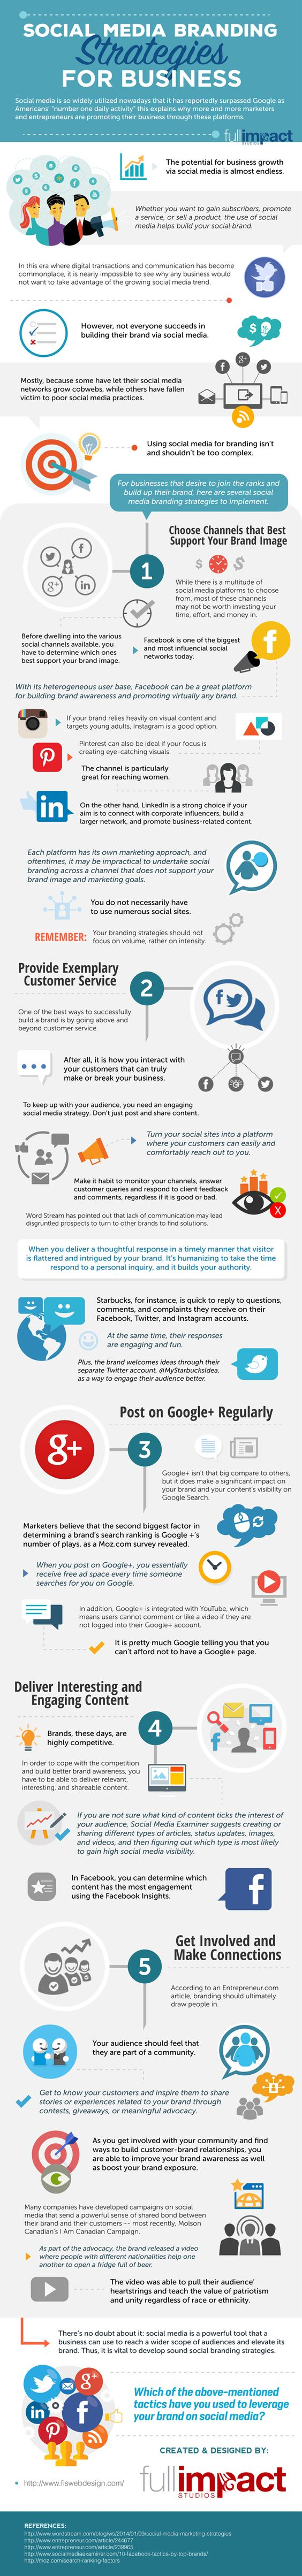 If you're new to a network or social media as a whole, you'll want to check out this informative infographic!